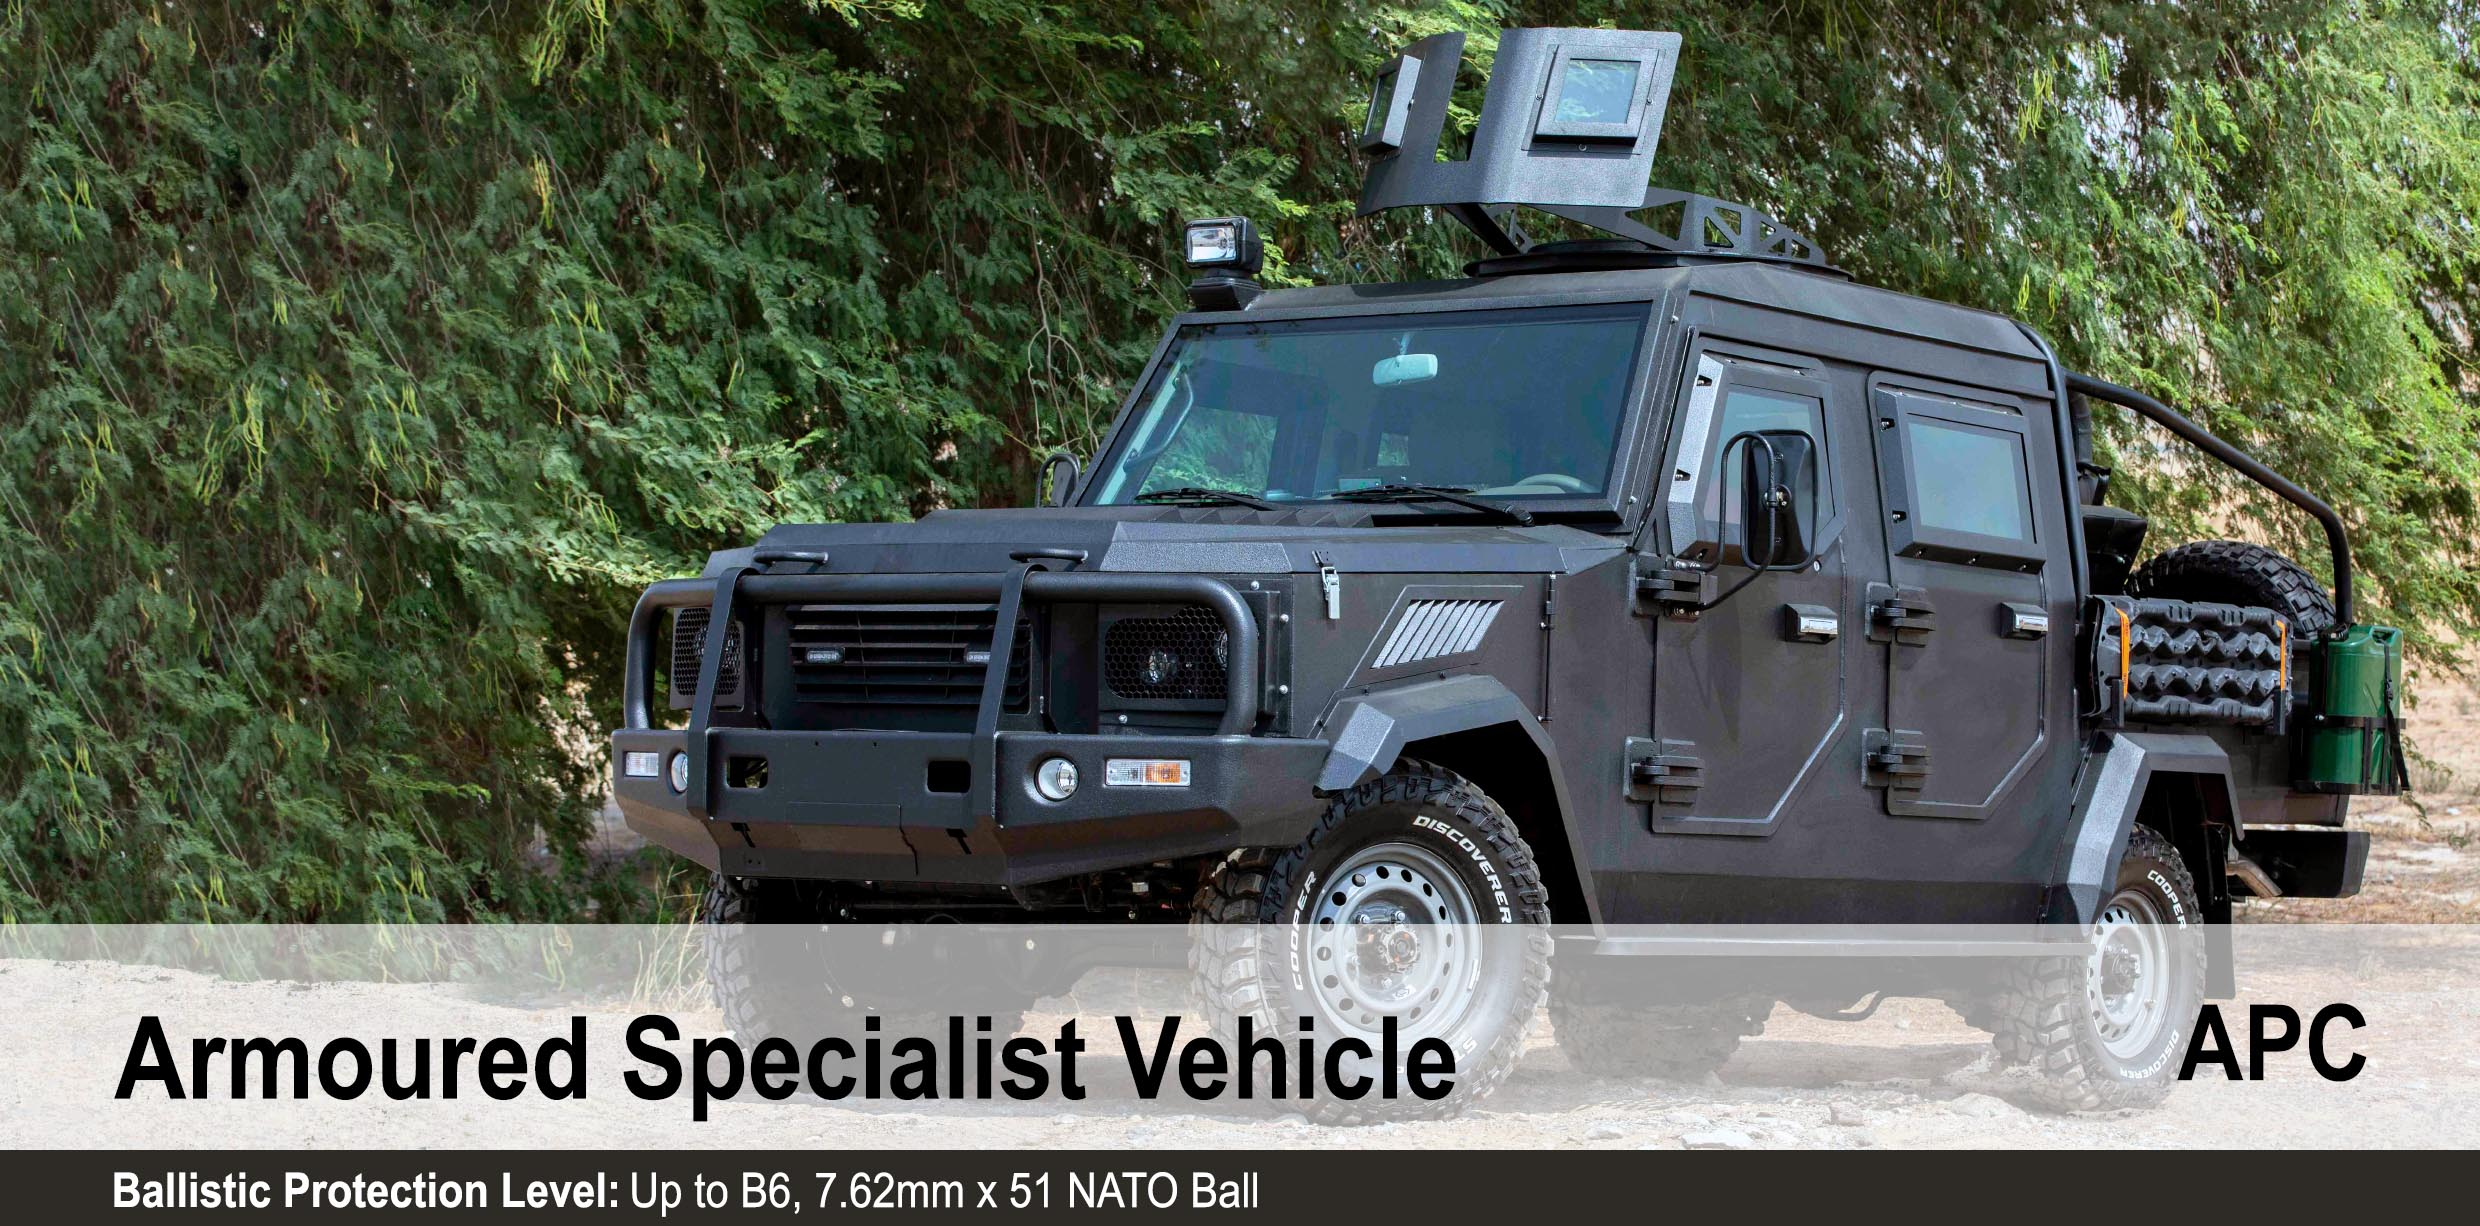 Mahindra Armored Specialist Vehicle, Armoured Personnel Carrier